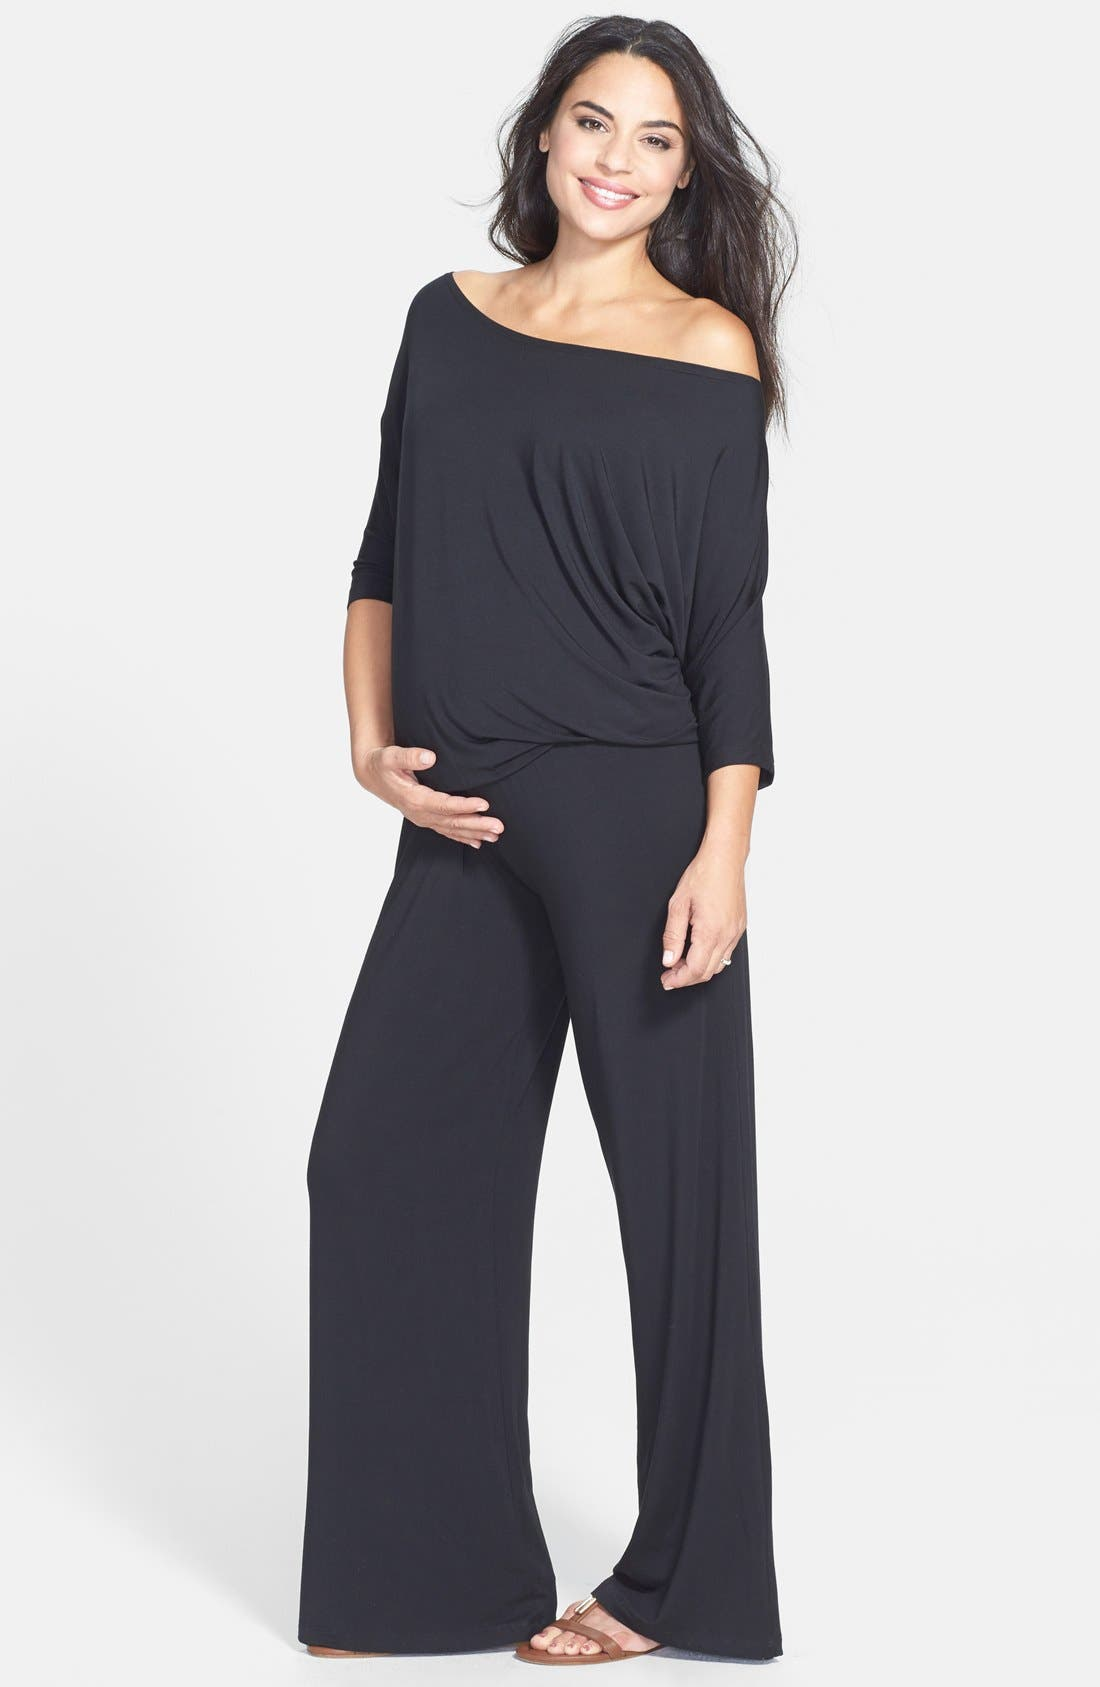 Alternate Image 1 Selected - Tart Maternity 'Michelle' Maternity Jumpsuit